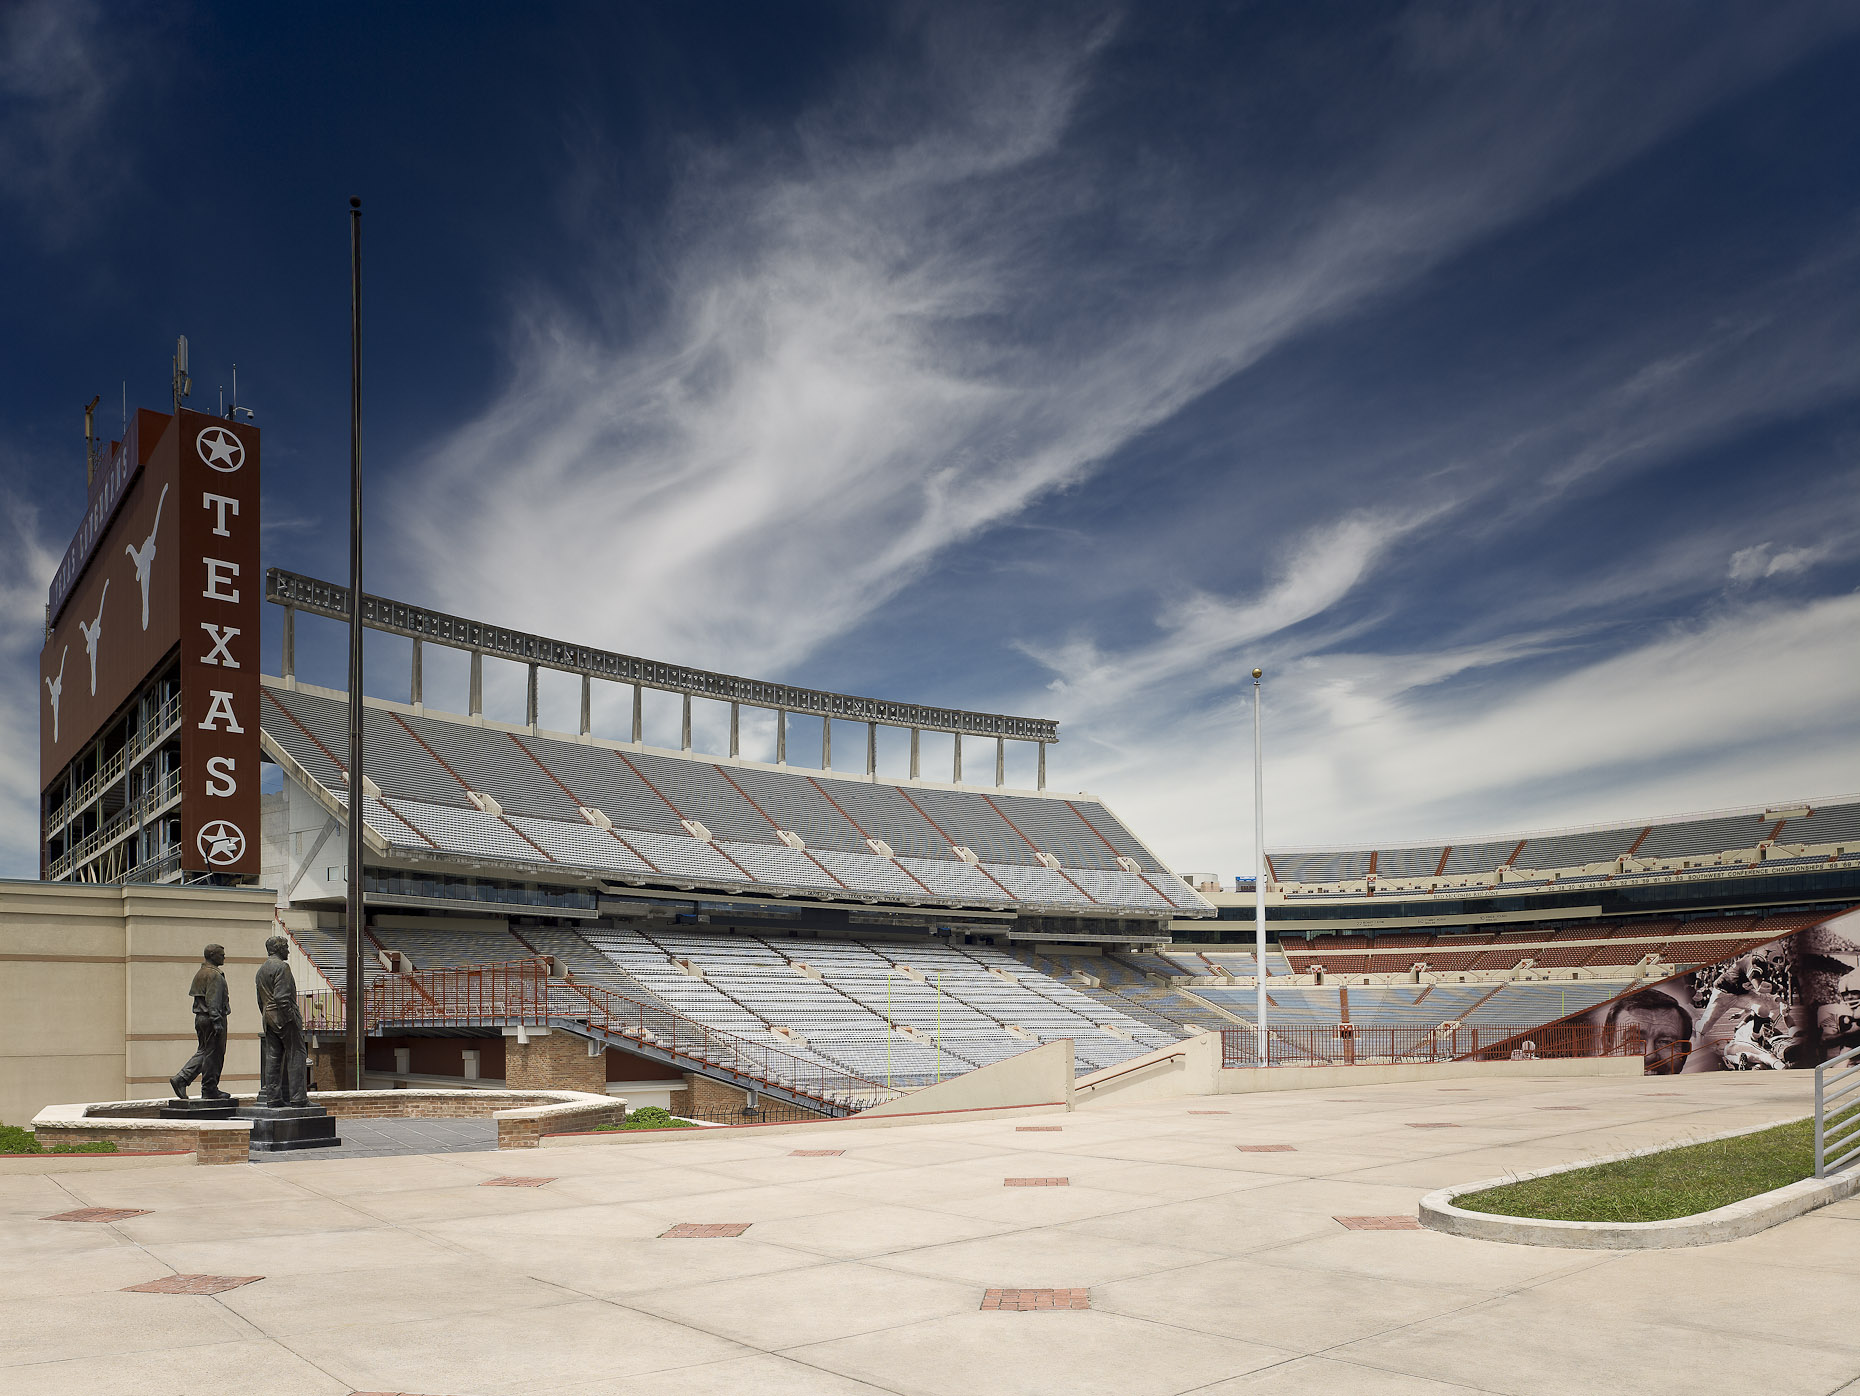 Darrell K. Royal Memorial Stadium at The University of Texas at Austin by HEERY International